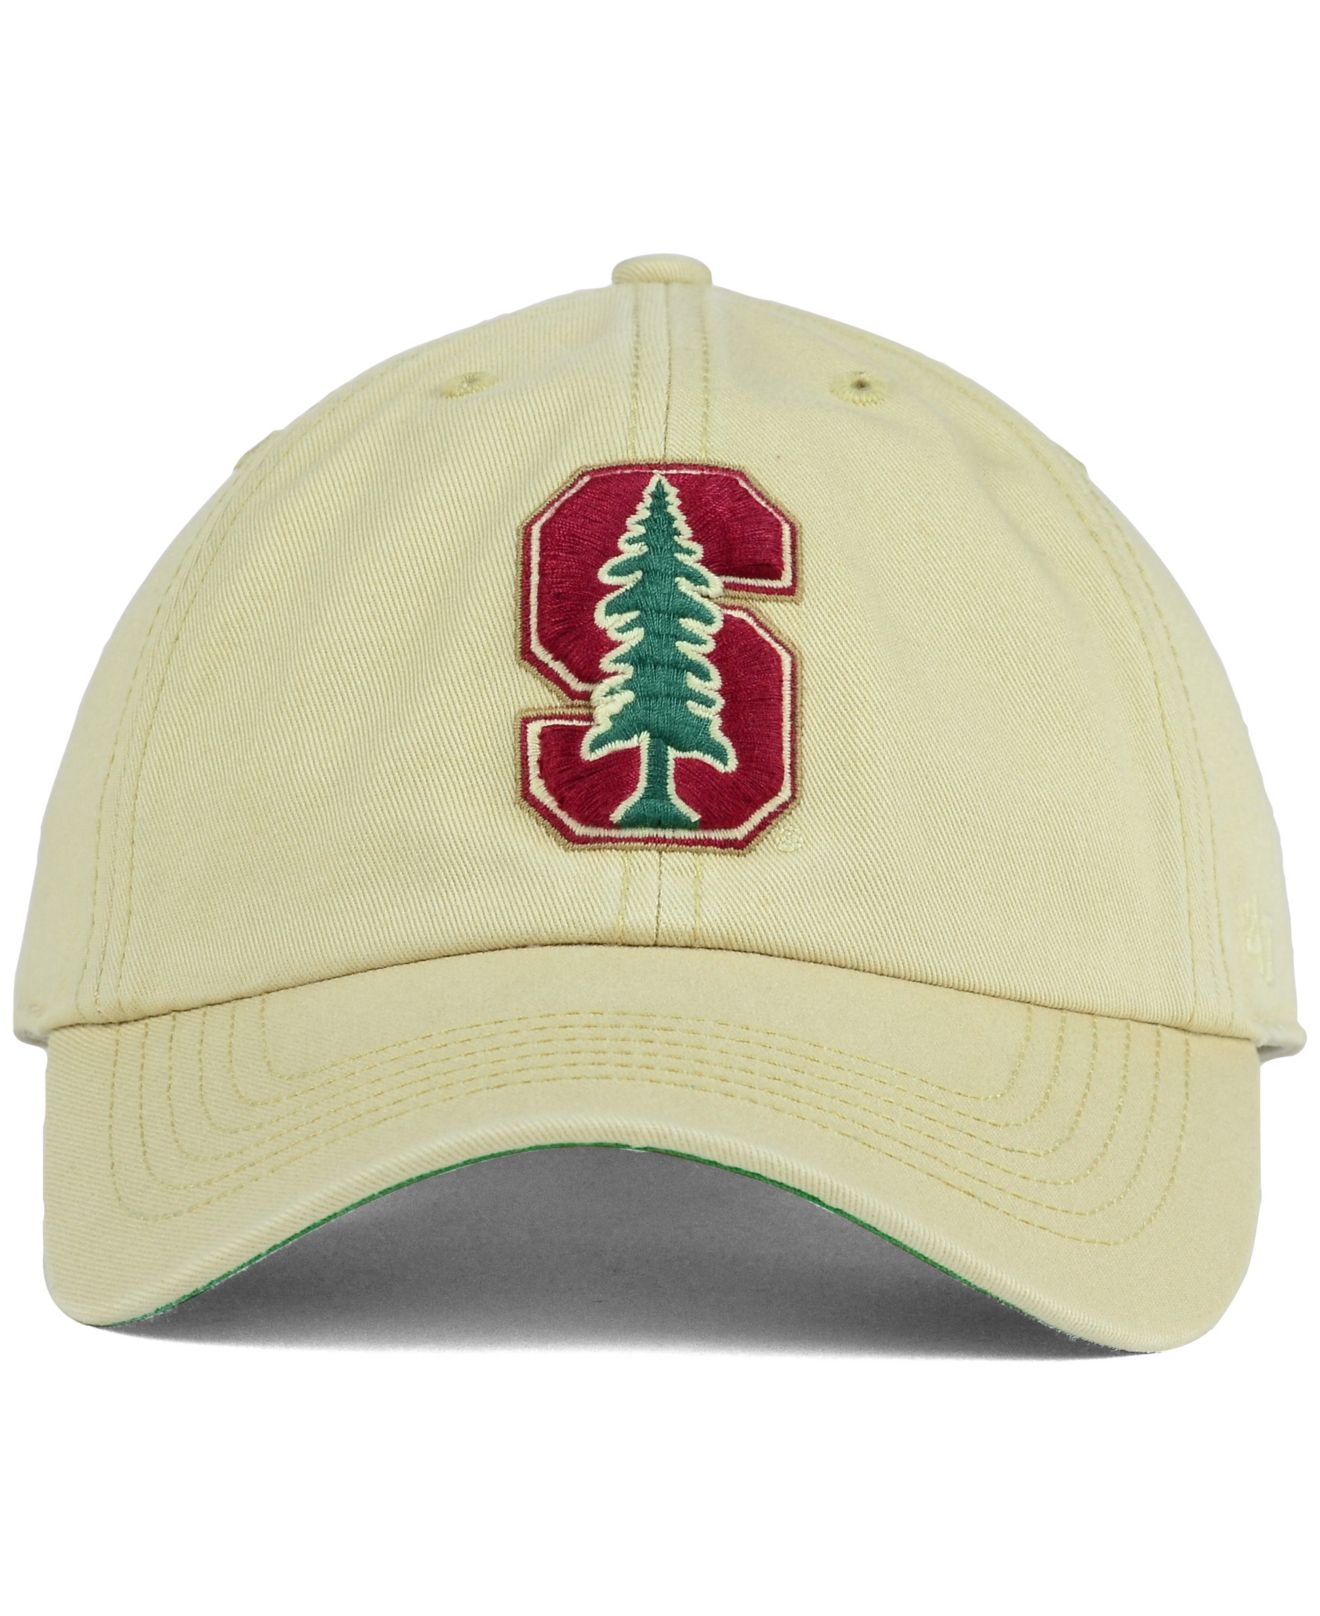 online store 990a2 db445 47 Brand Stanford Cardinal Sahara Lawrence Cap in Natural for Men - Lyst